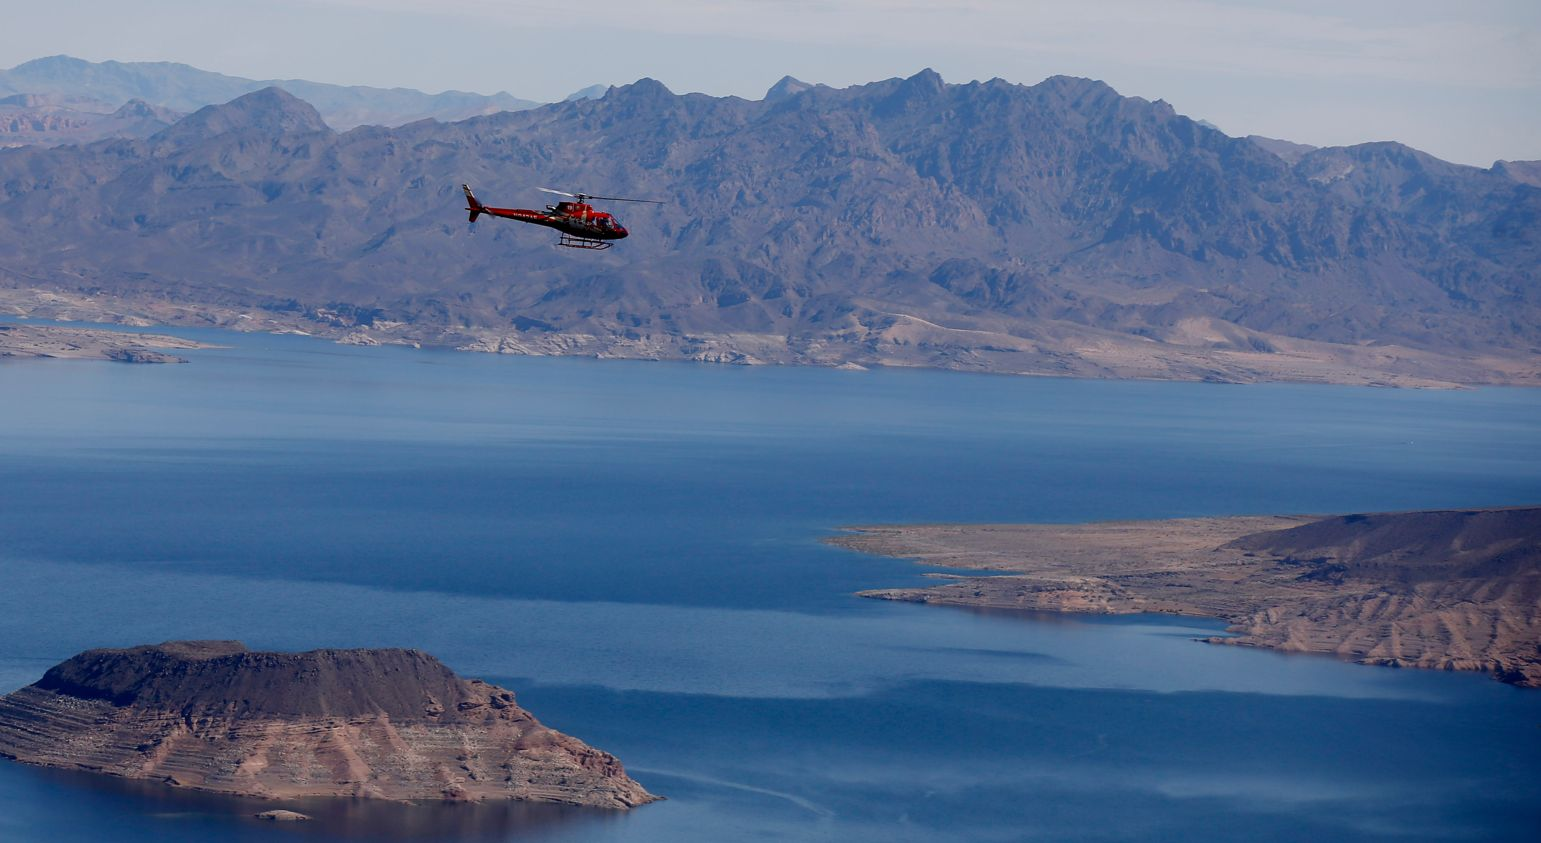 A red helicopter flies over Lake Mead en route to a Grand Canyon tour.